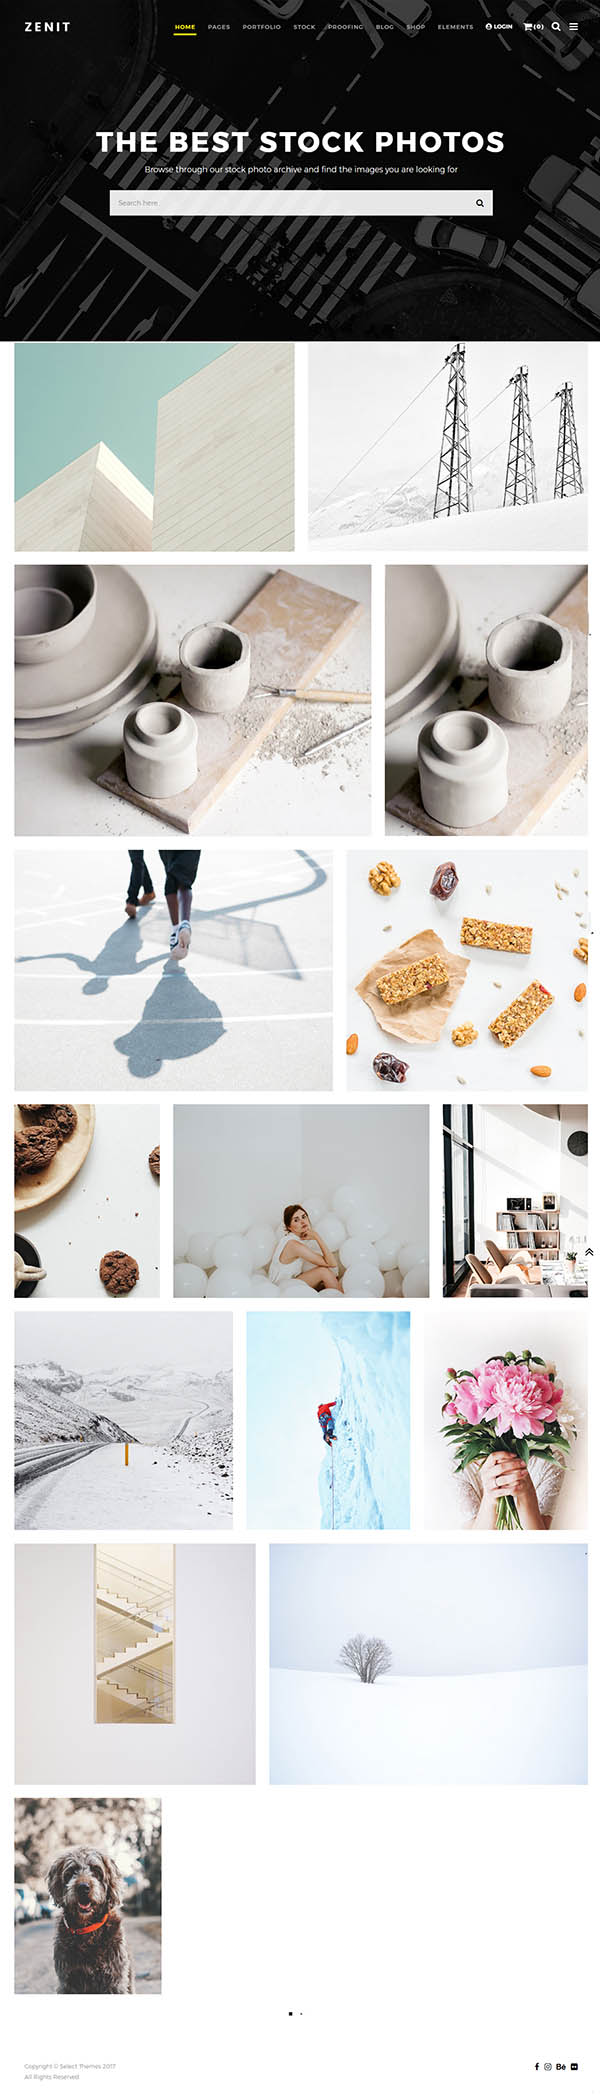 Zenit - A Crisp and Clean Photography Theme